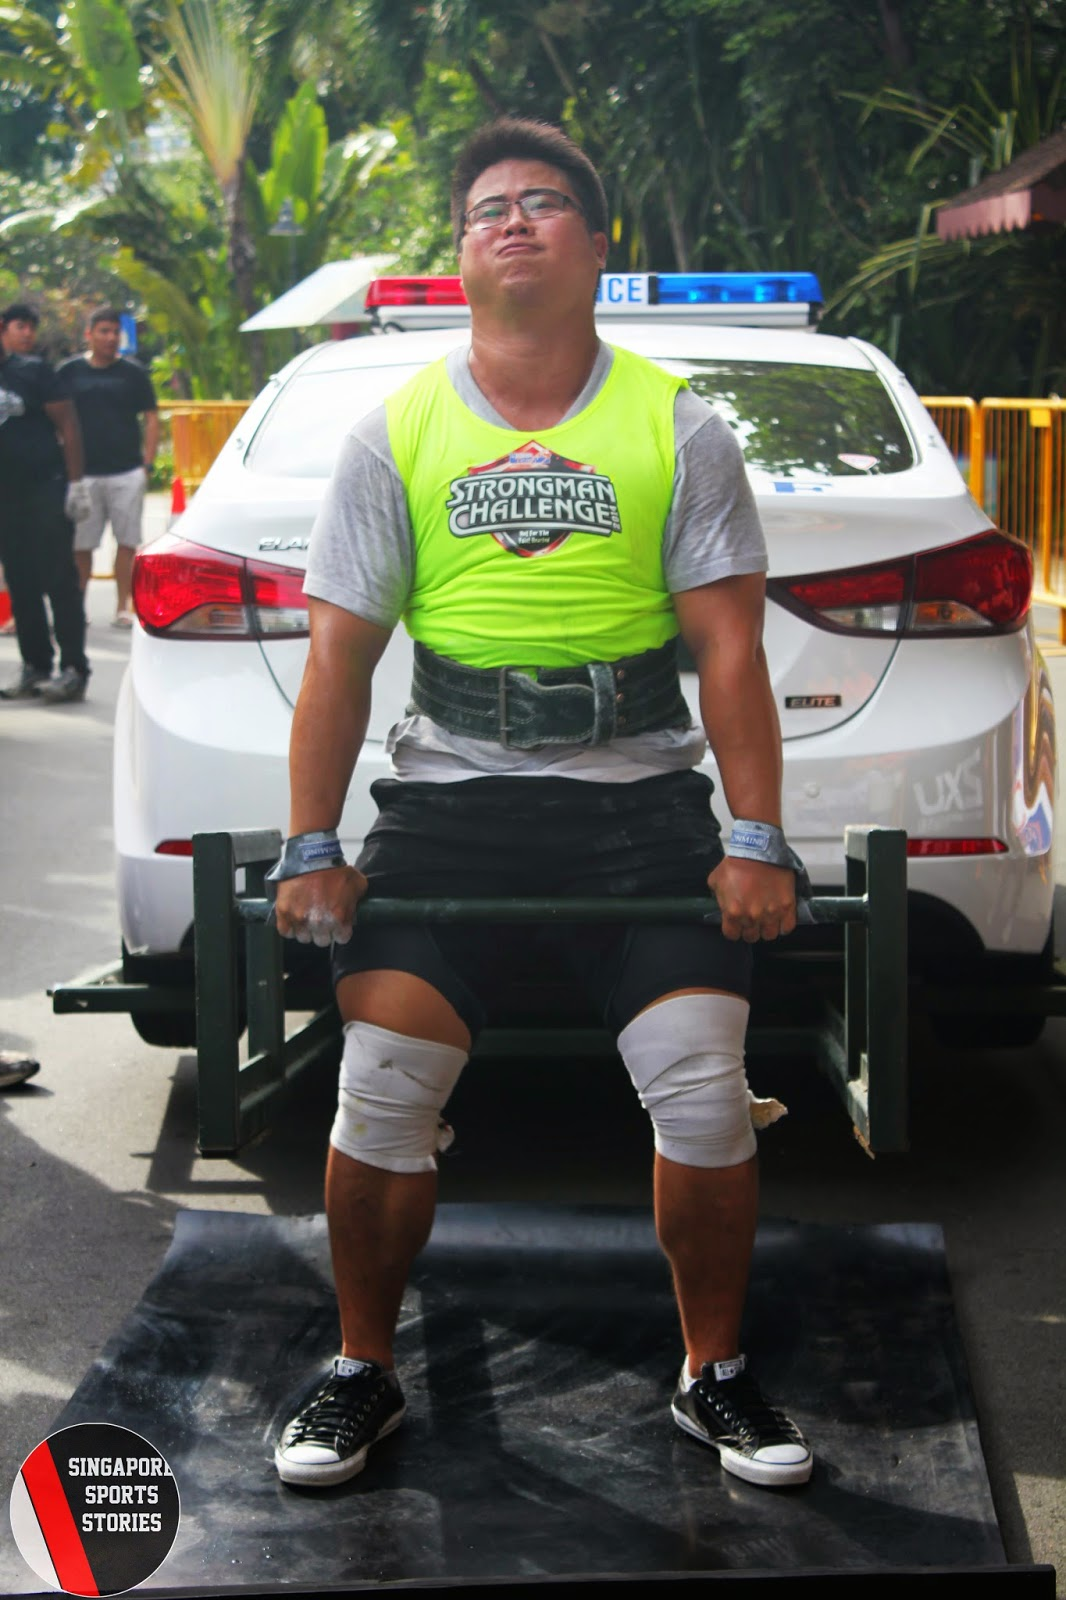 Benny Chew from Singapore strongman community, SG Titans, finished fourth at the HomeTeamNS Strongman Challenge 2014